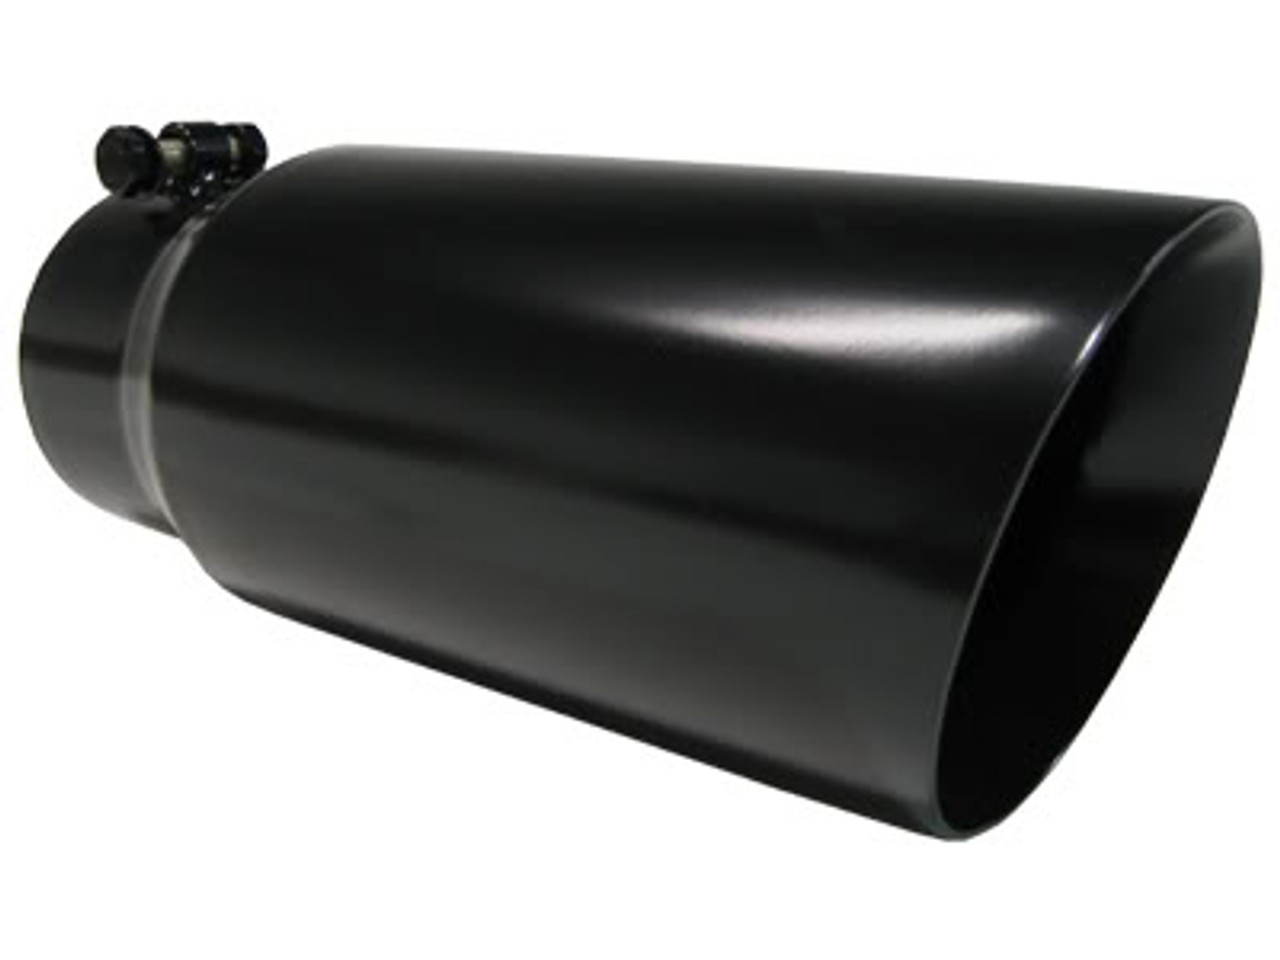 t5053blk mbrp black stainless steel exhaust tip 5 outlet dual walled angled 4 inlet 12 length